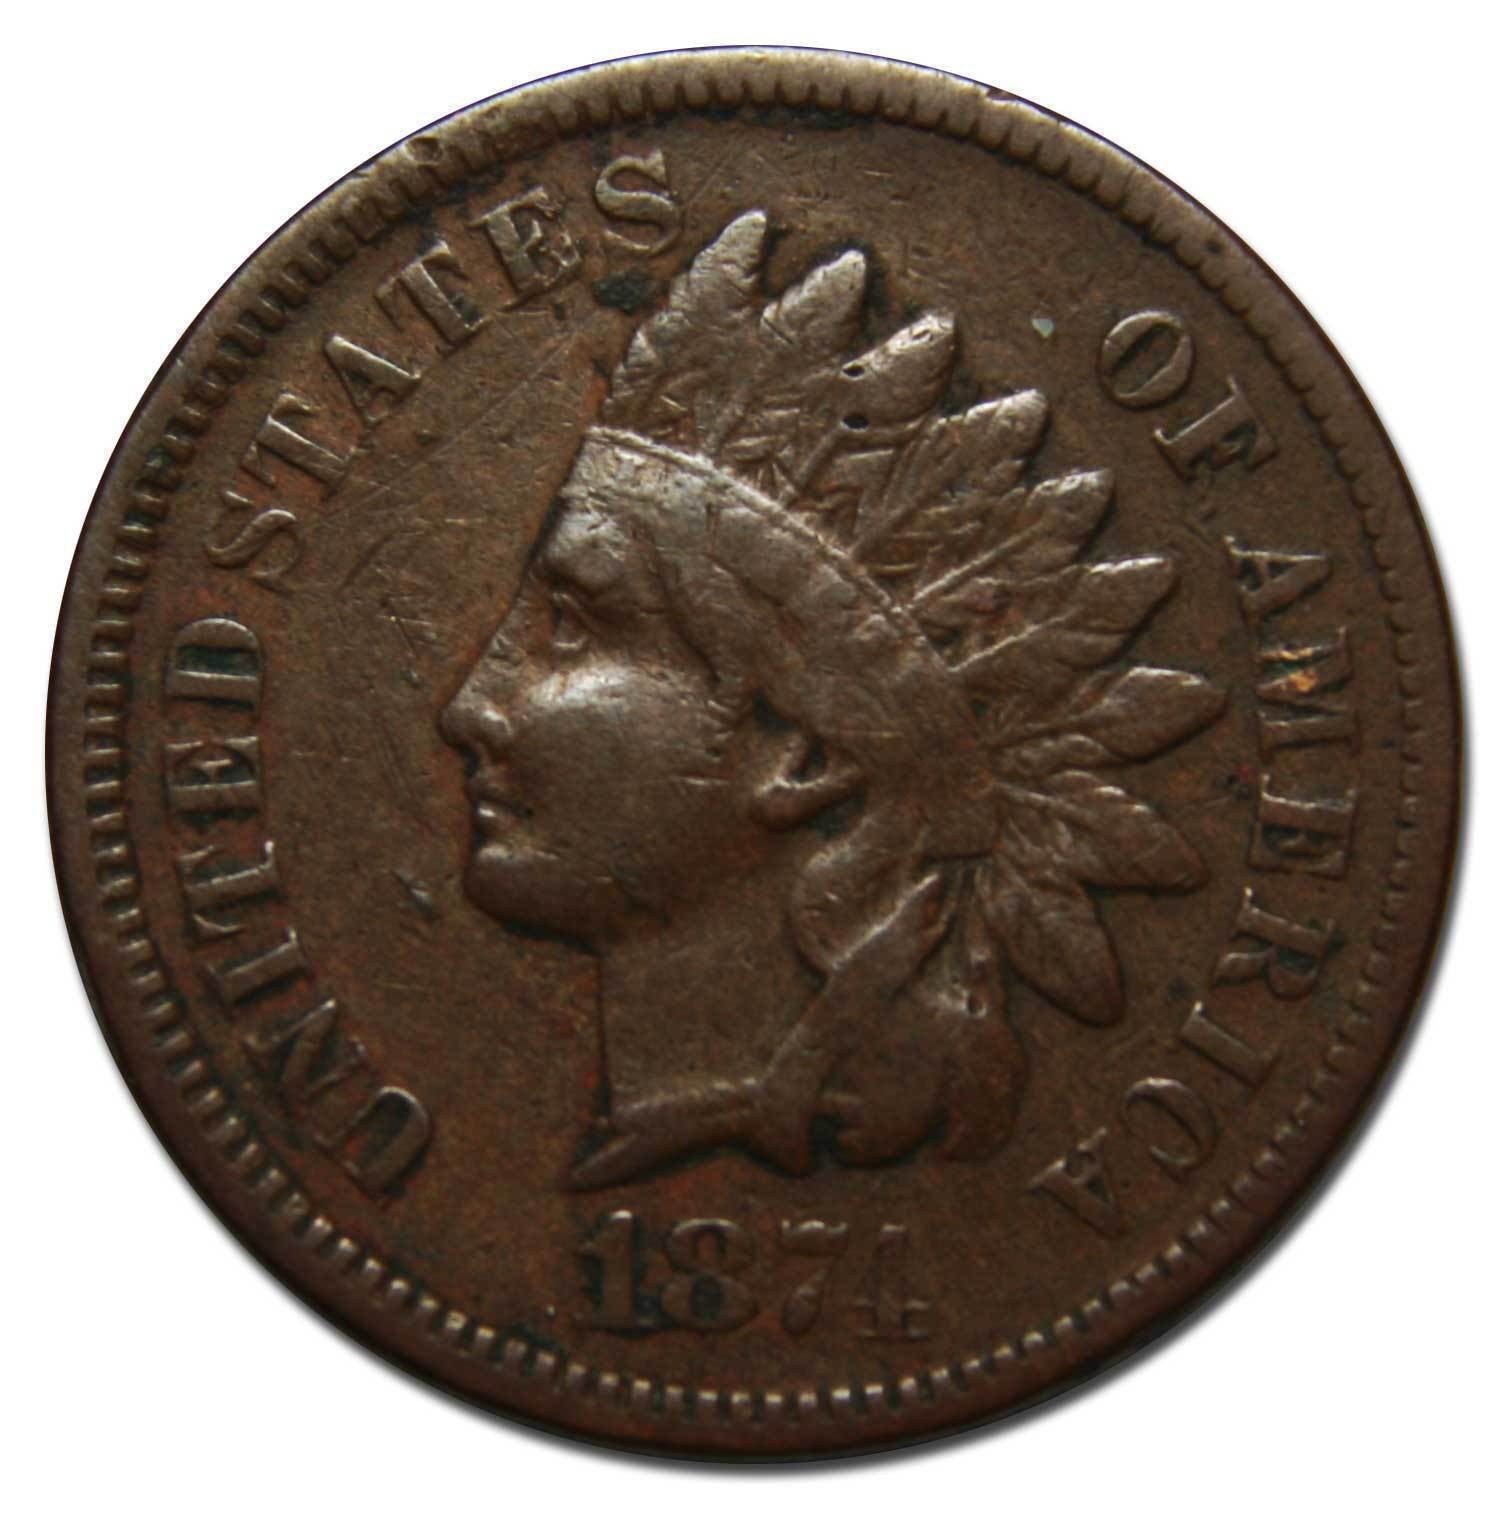 1874 One Cent Indian Head Penny Coin Lot# A 2191